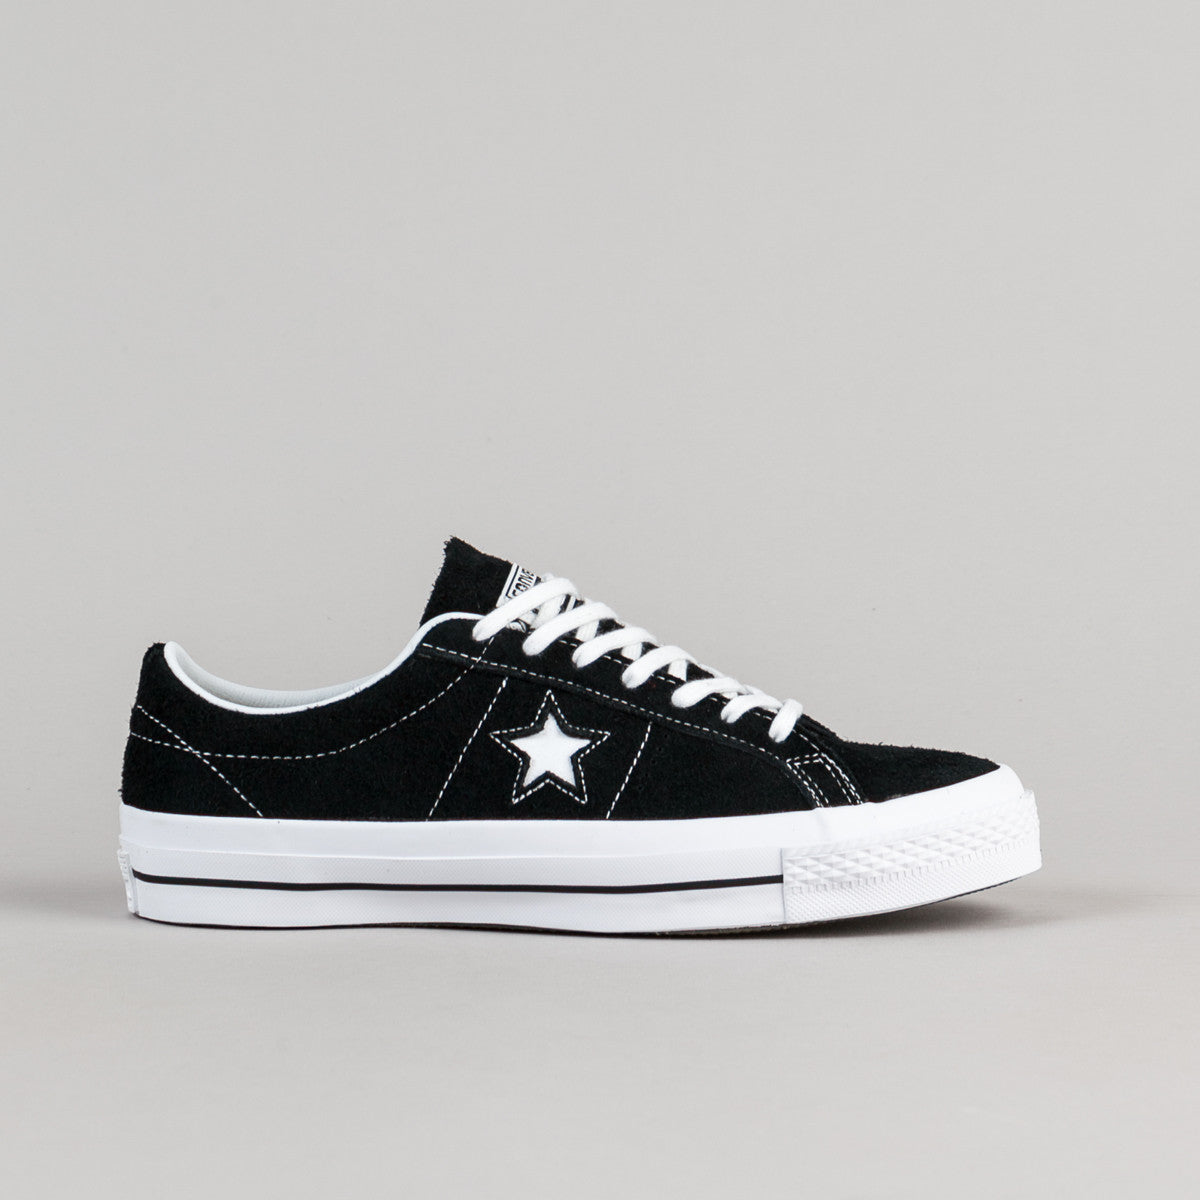 Converse One Star OX Shoes - Black / White / Gum